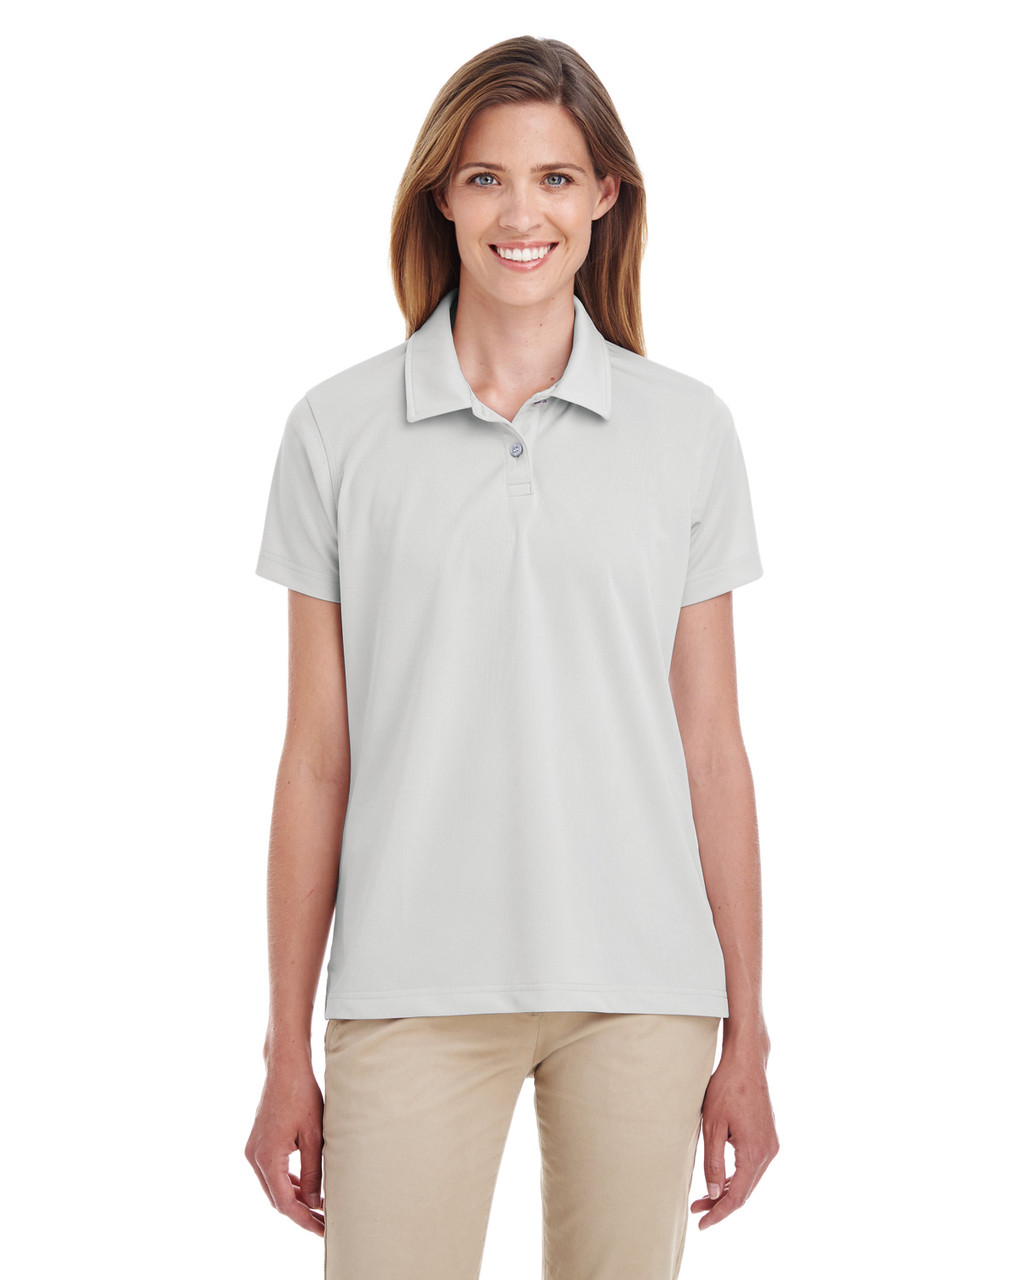 Sport Silver - TT21W Team 365 Ladies' Command Snag Protection Polo Shirt